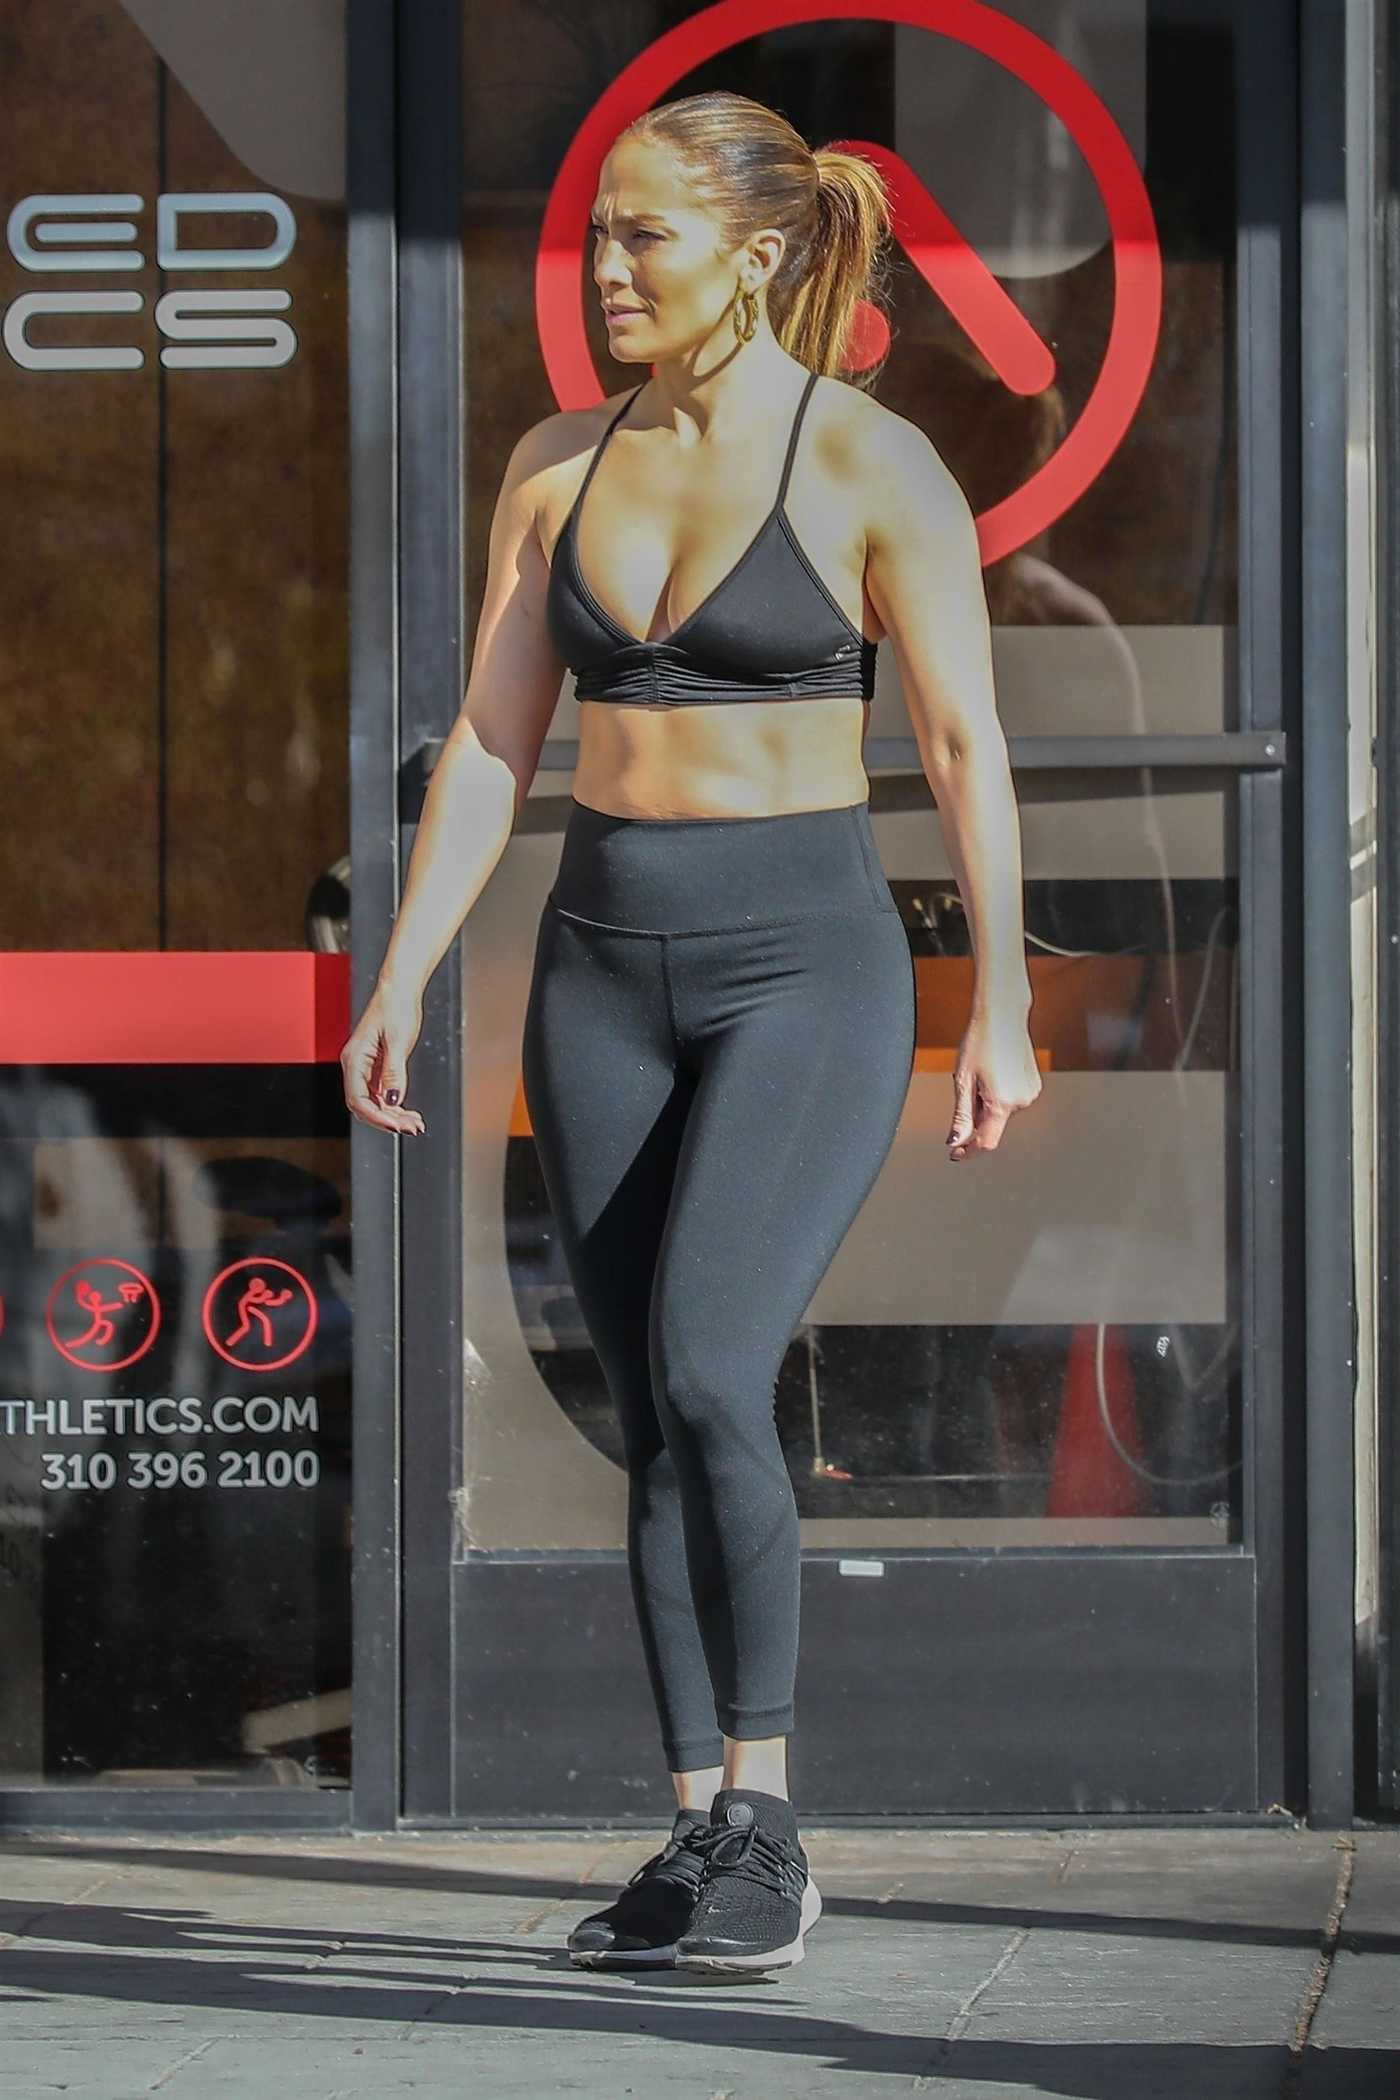 Jennifer Lopez in a Black Leggings Attends a Gym in Venice Beach 01/01/2019